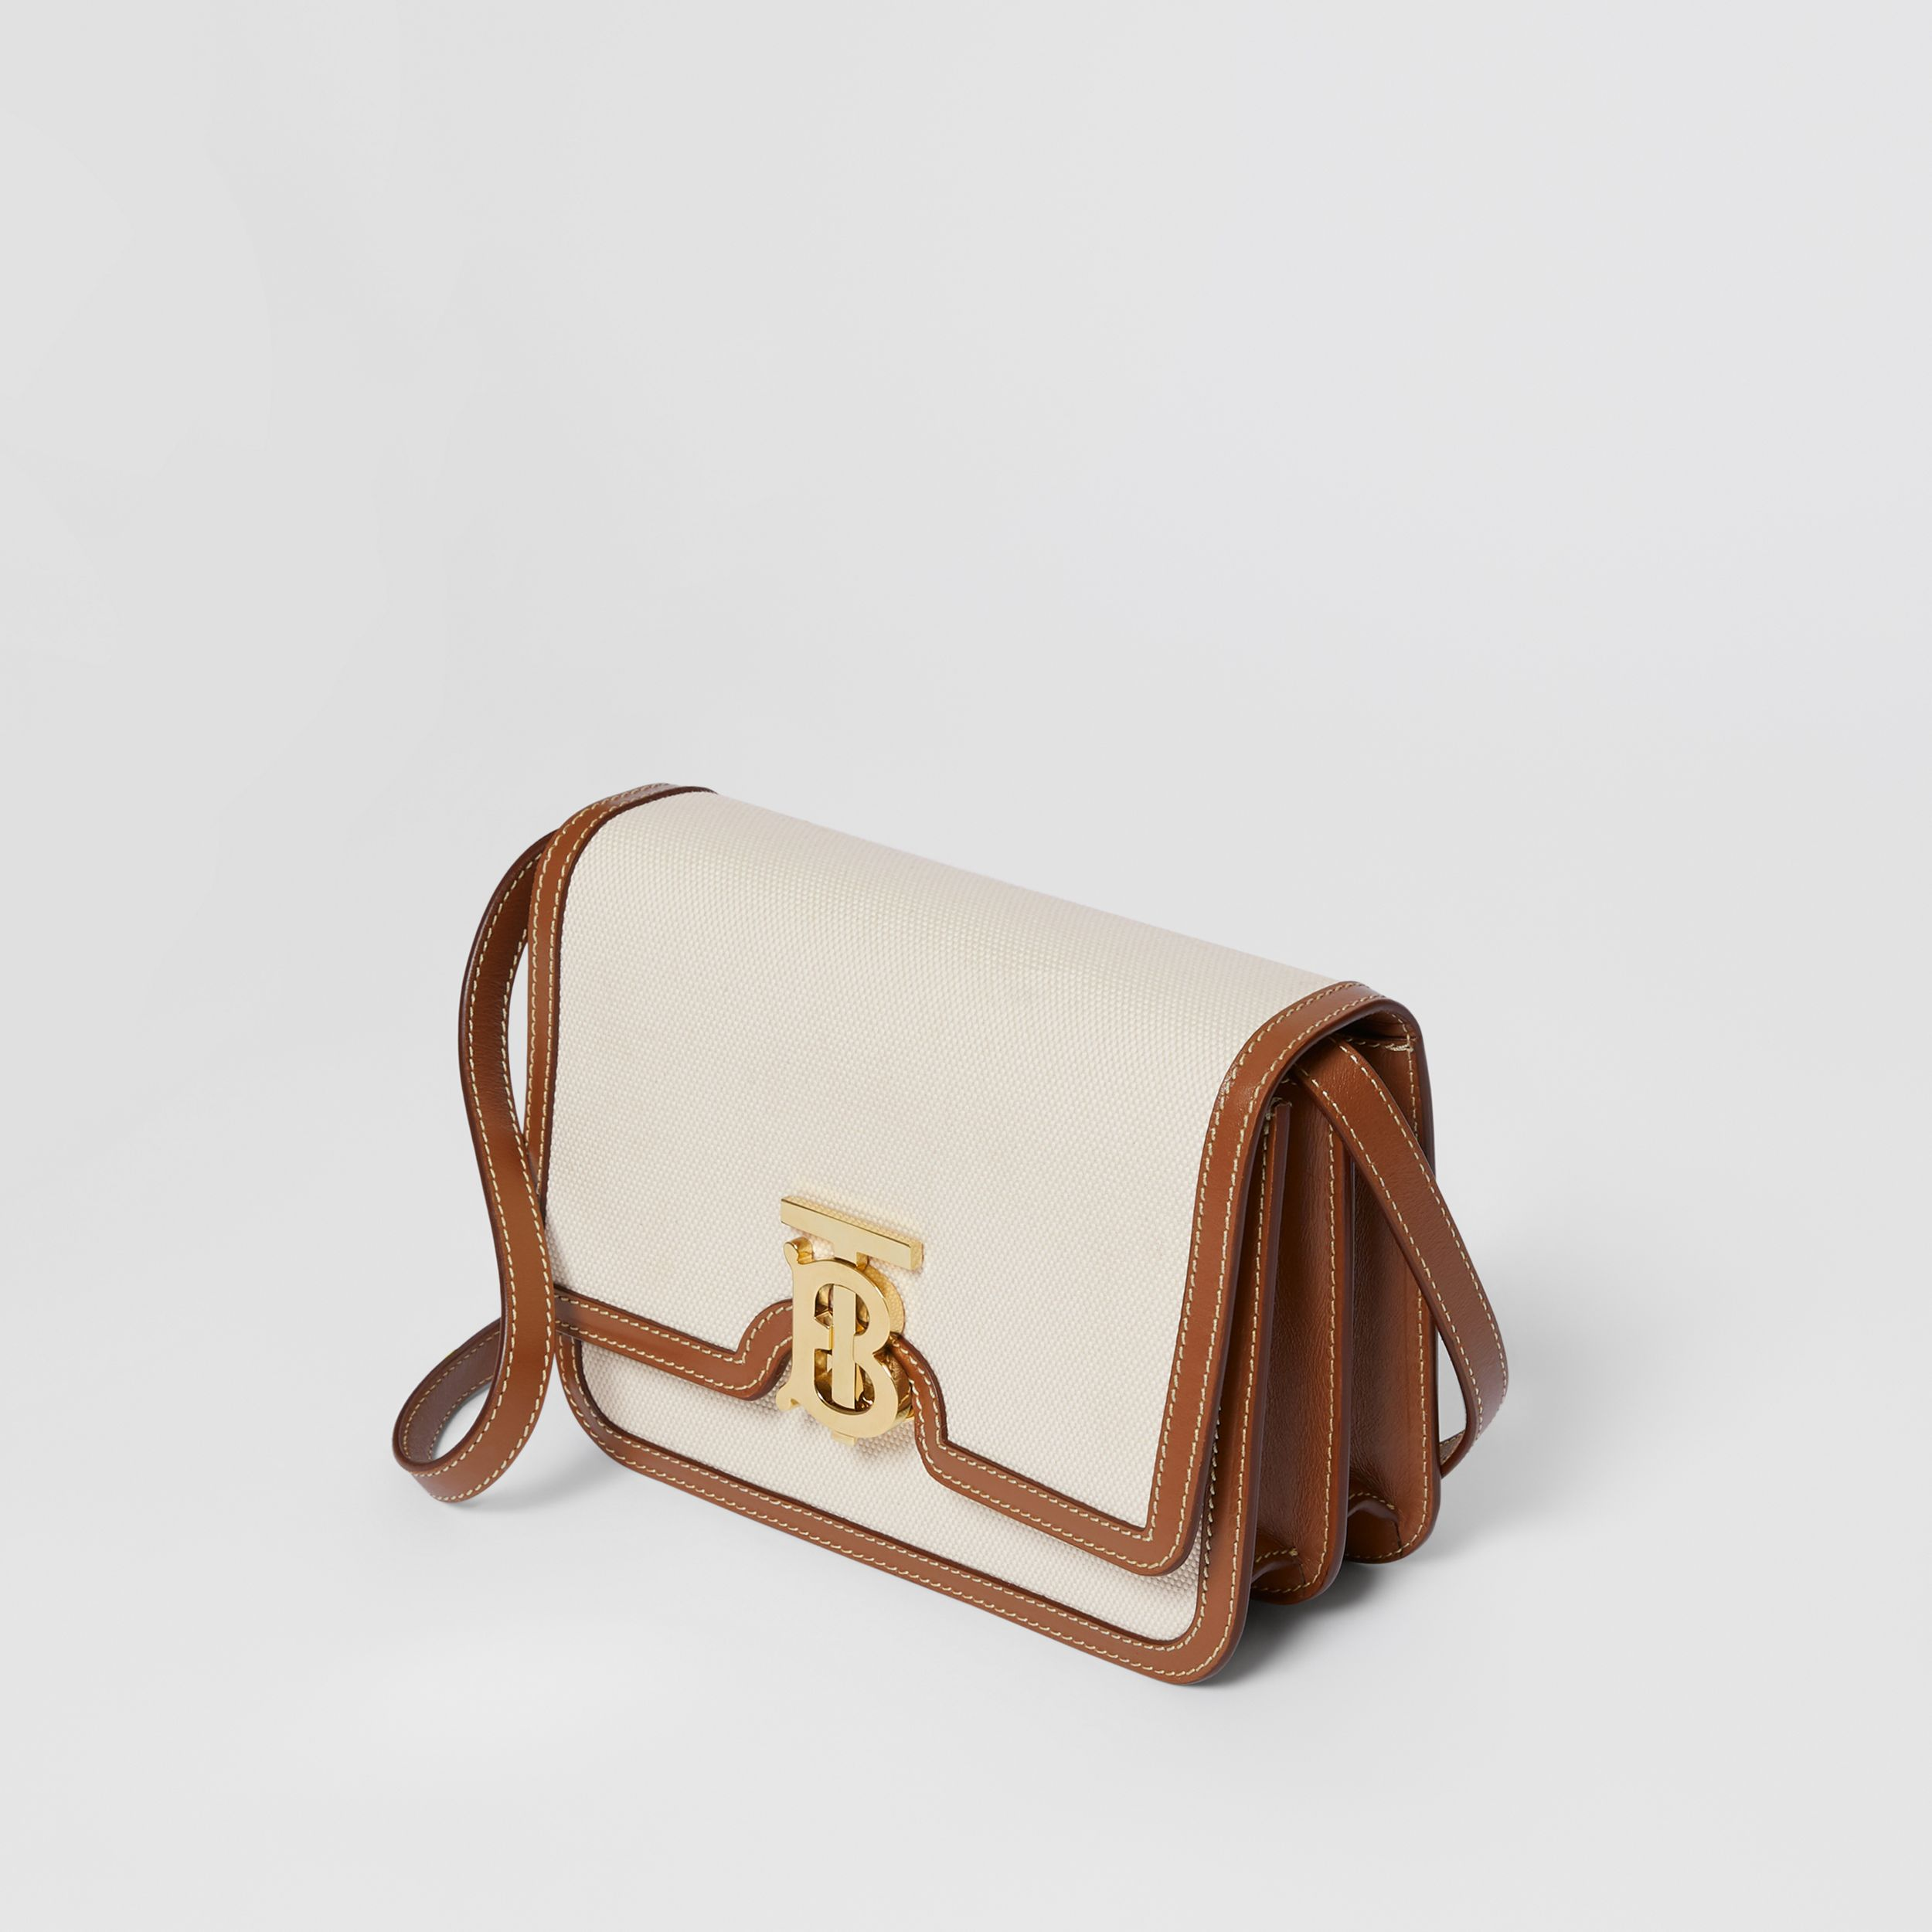 Small Two-tone Canvas and Leather TB Bag in Natural/malt Brown - Women | Burberry United Kingdom - 3